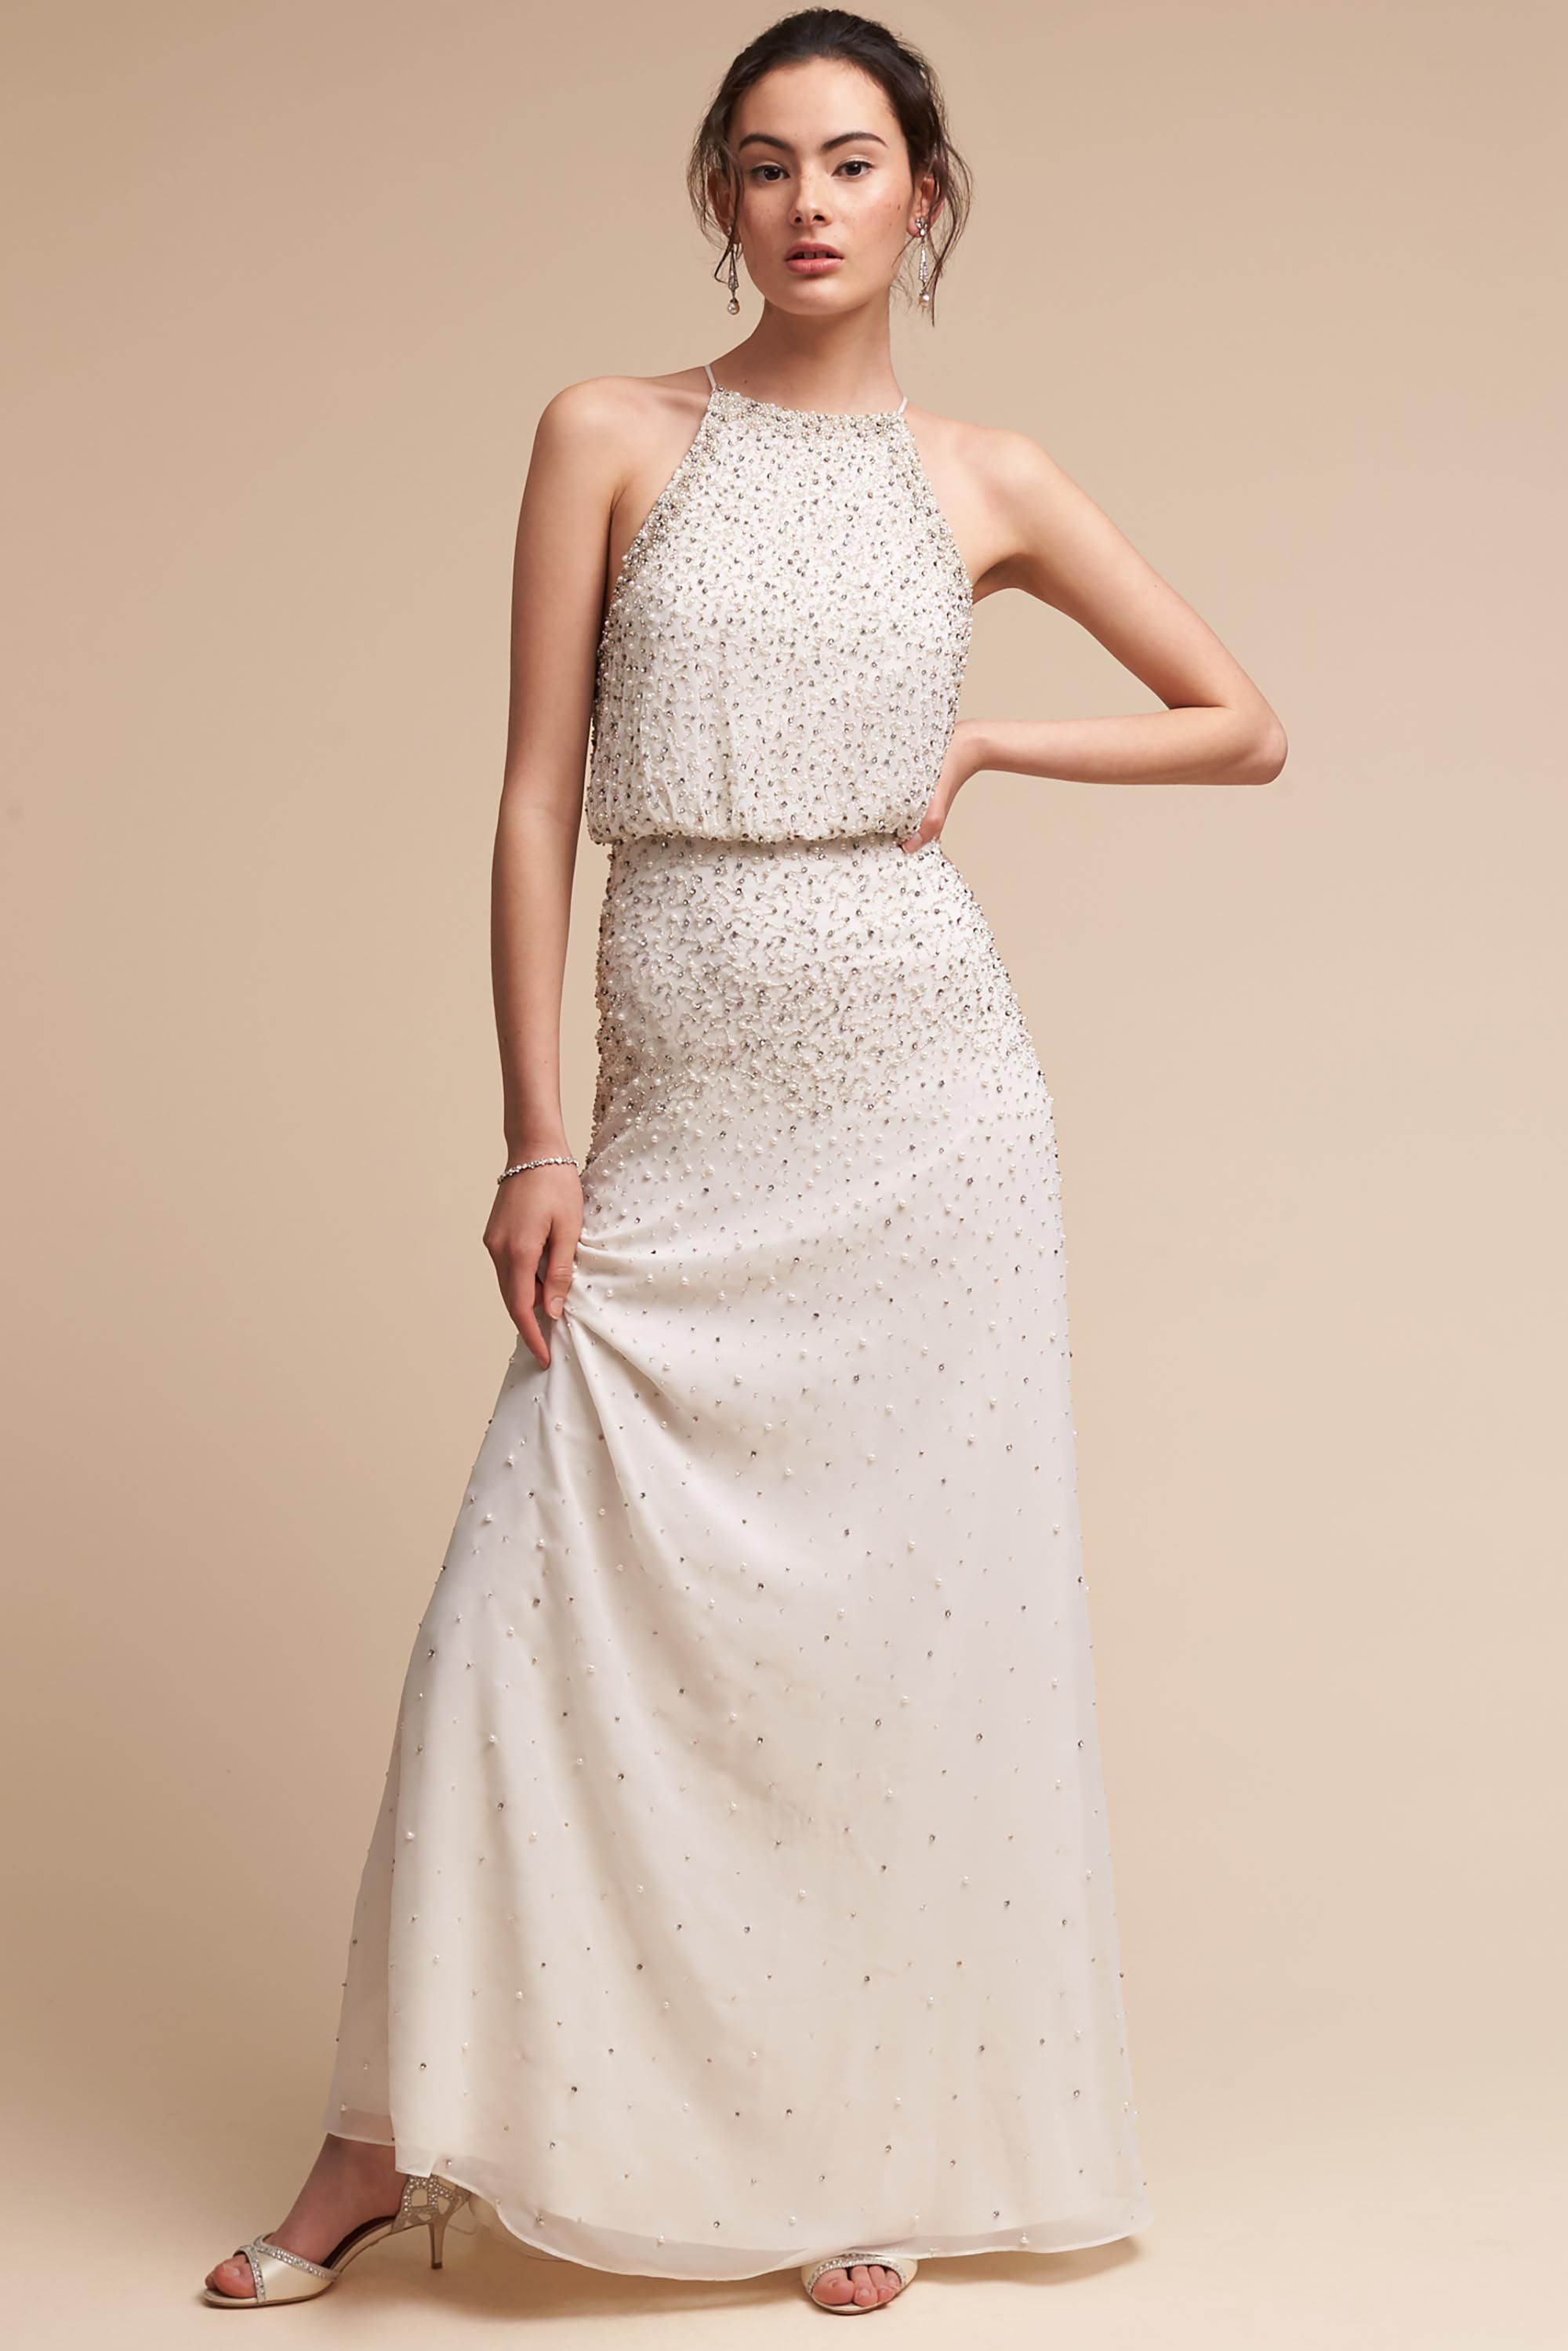 Rian Dress from @BHLDN | Wedding dresses | Pinterest | Wedding dress ...